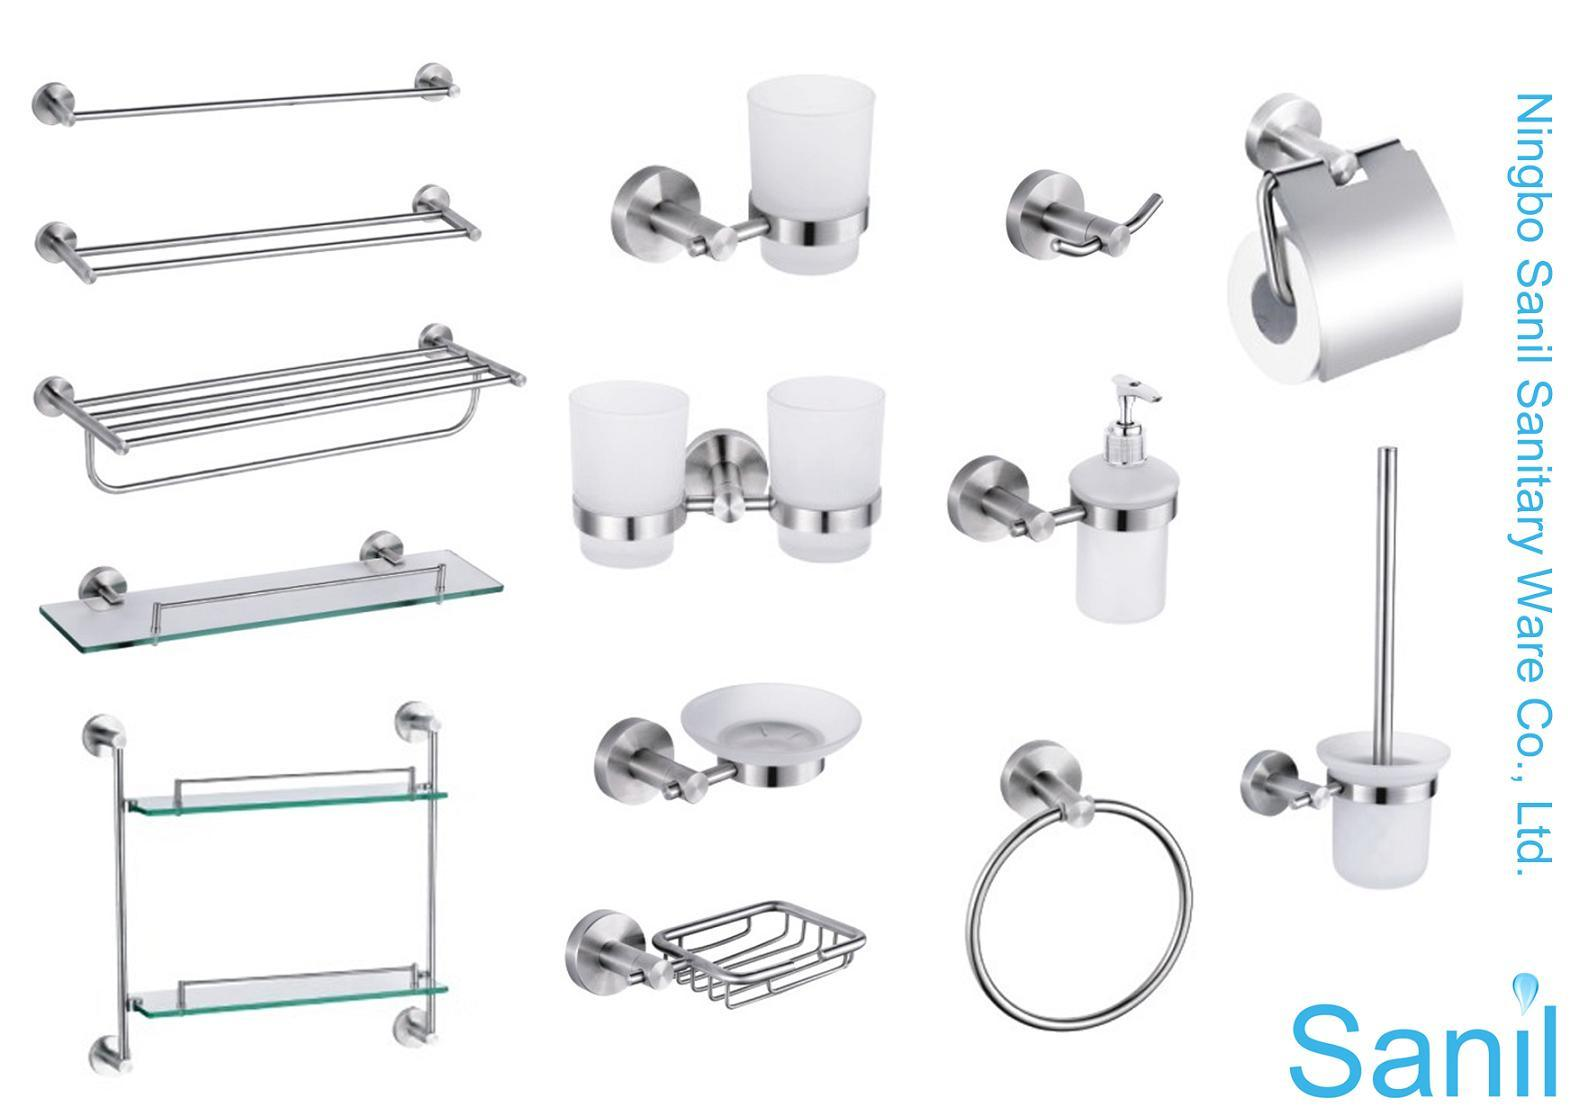 Bathroom hardware kit with creative pictures for Bathroom accessory kit